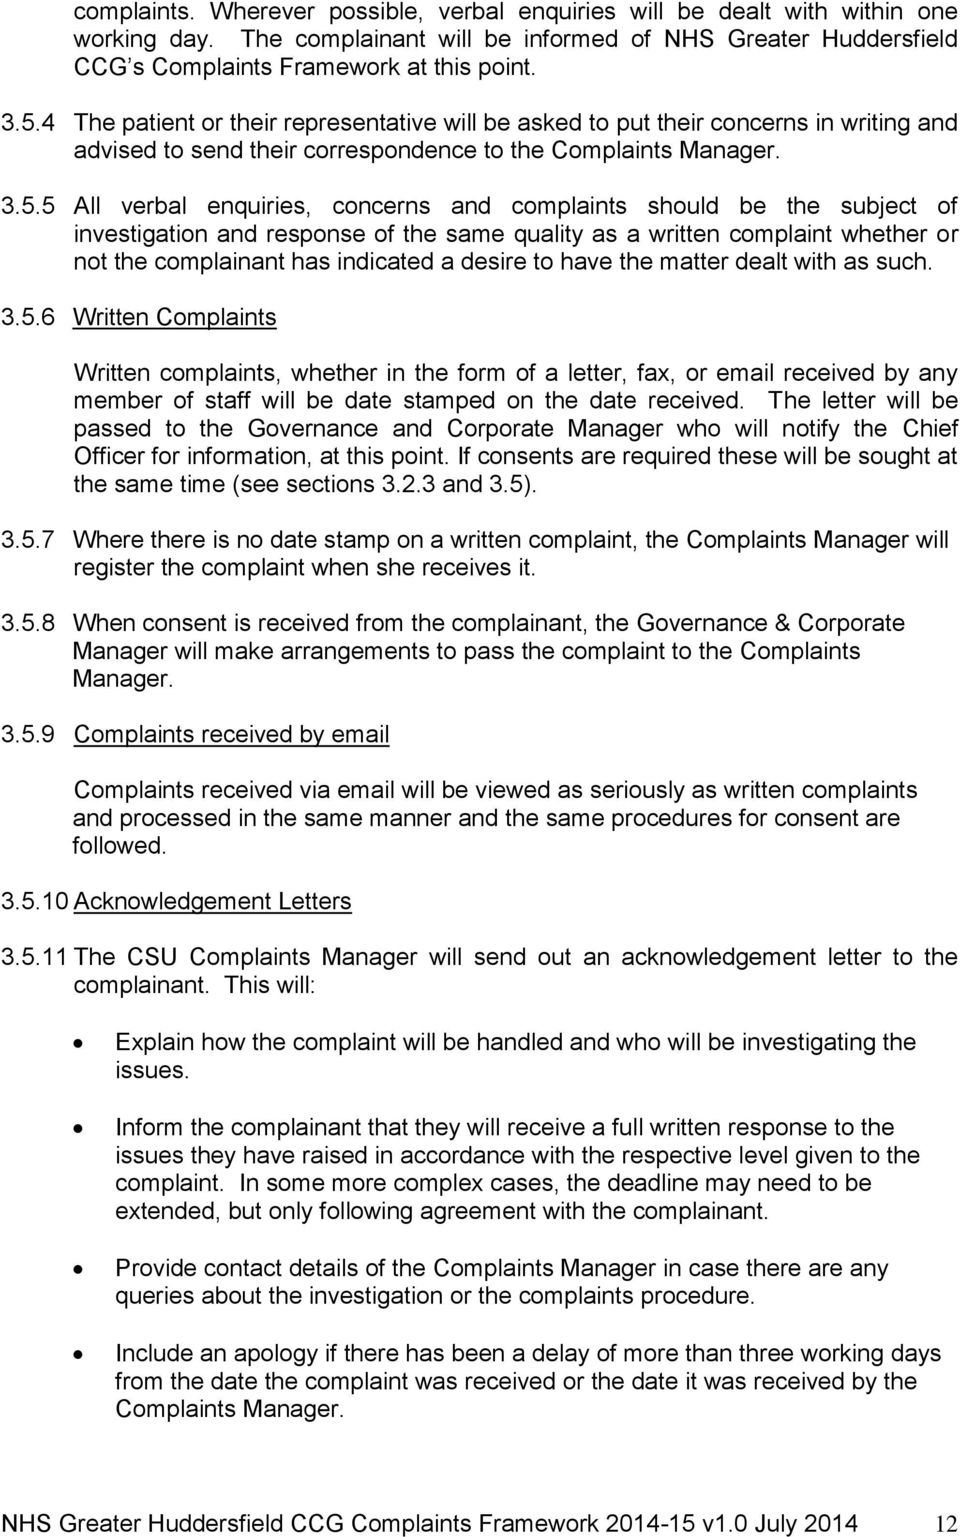 5 All verbal enquiries, concerns and complaints should be the subject of investigation and response of the same quality as a written complaint whether or not the complainant has indicated a desire to